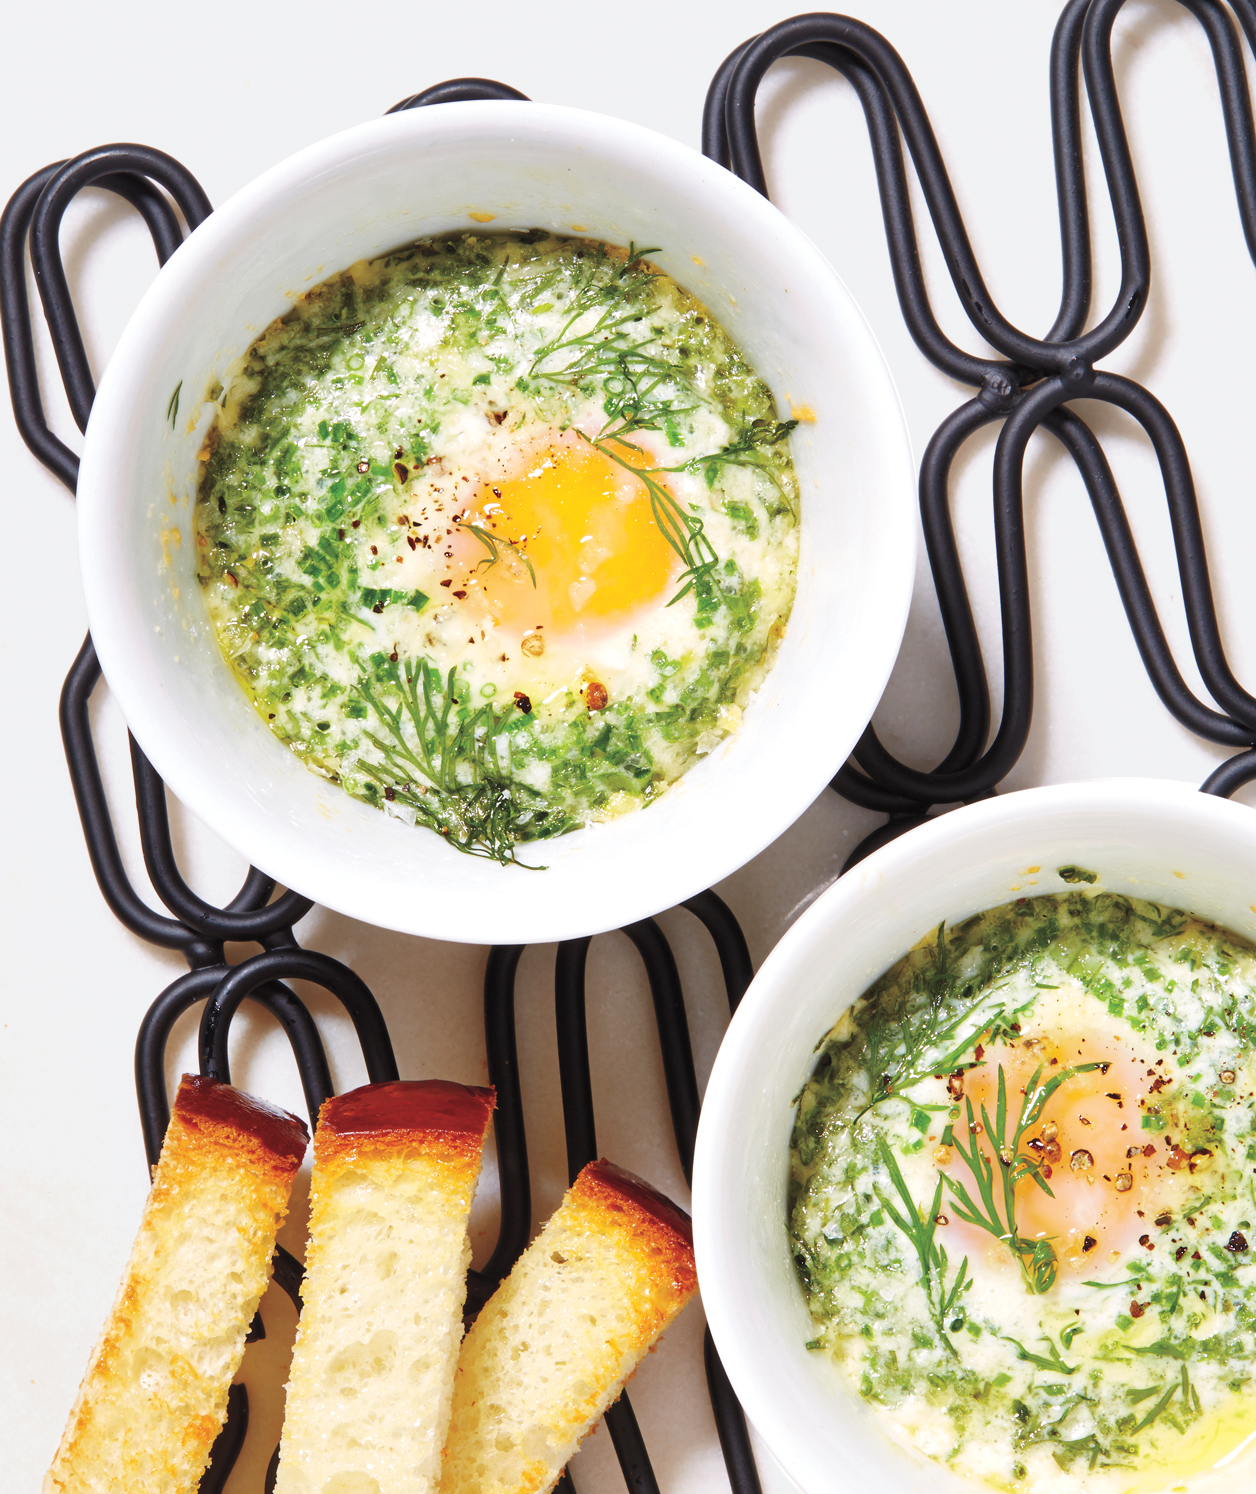 9 Rules for a Foolproof Mother's Day Breakfast in Bed